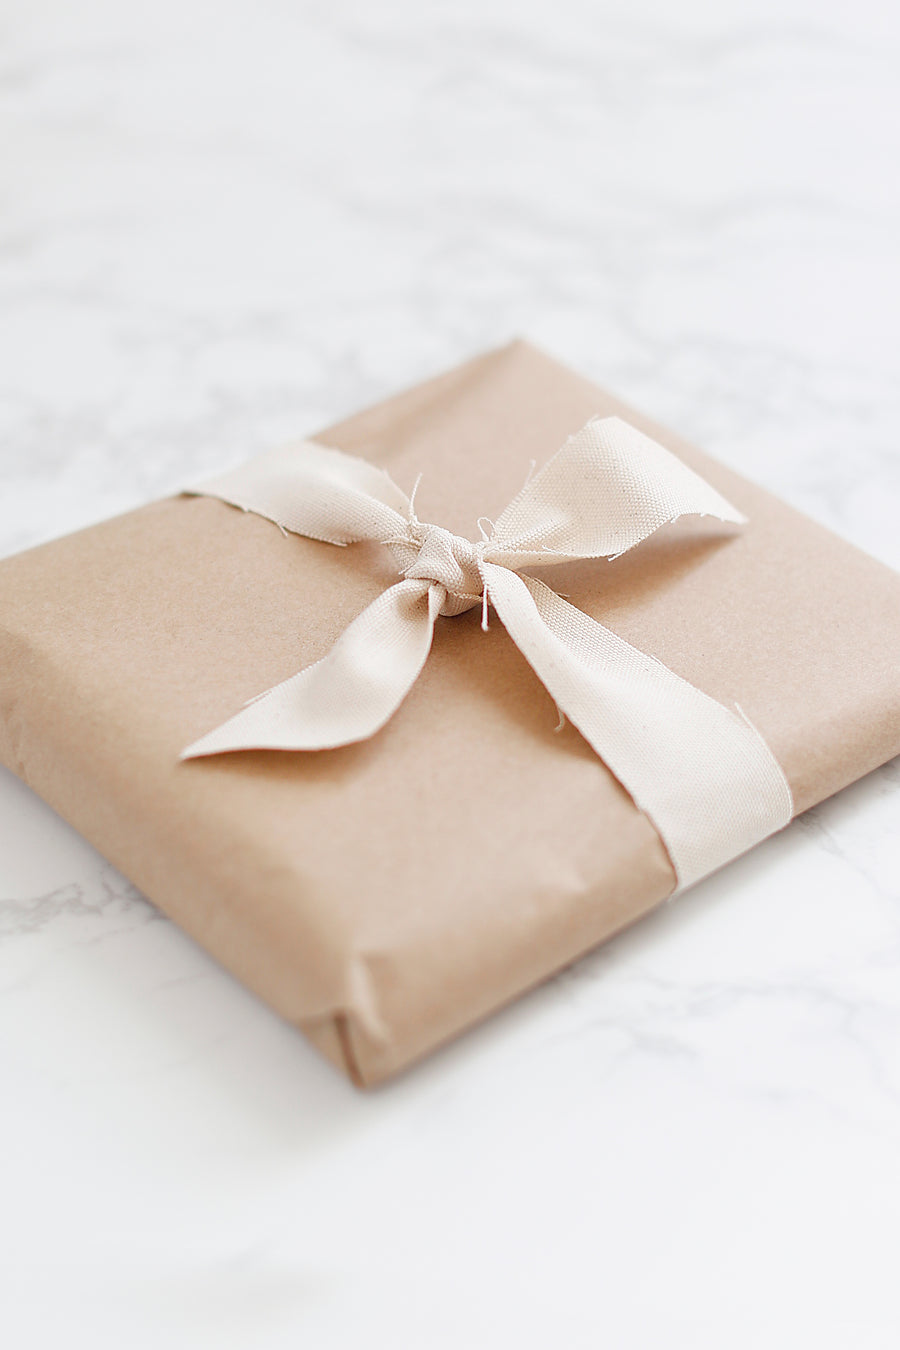 Eco Gift Wrapping